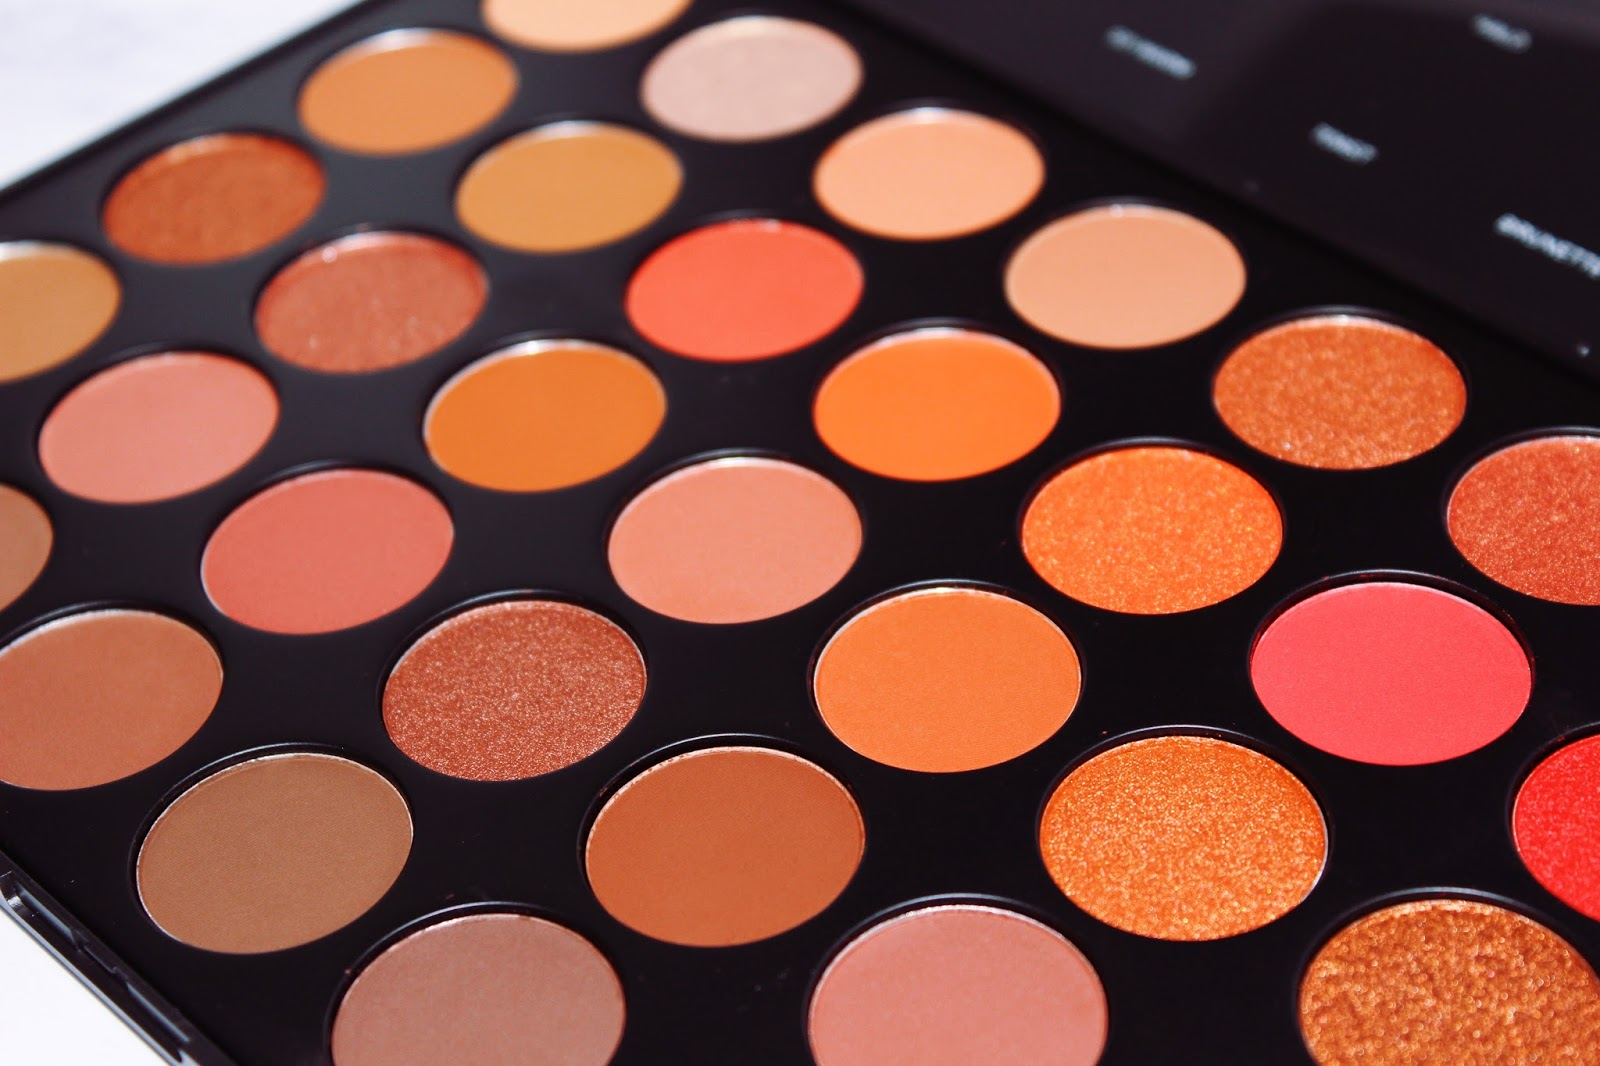 Morphe 35o2 Quot Second Nature Quot Palette Swatches The Ra